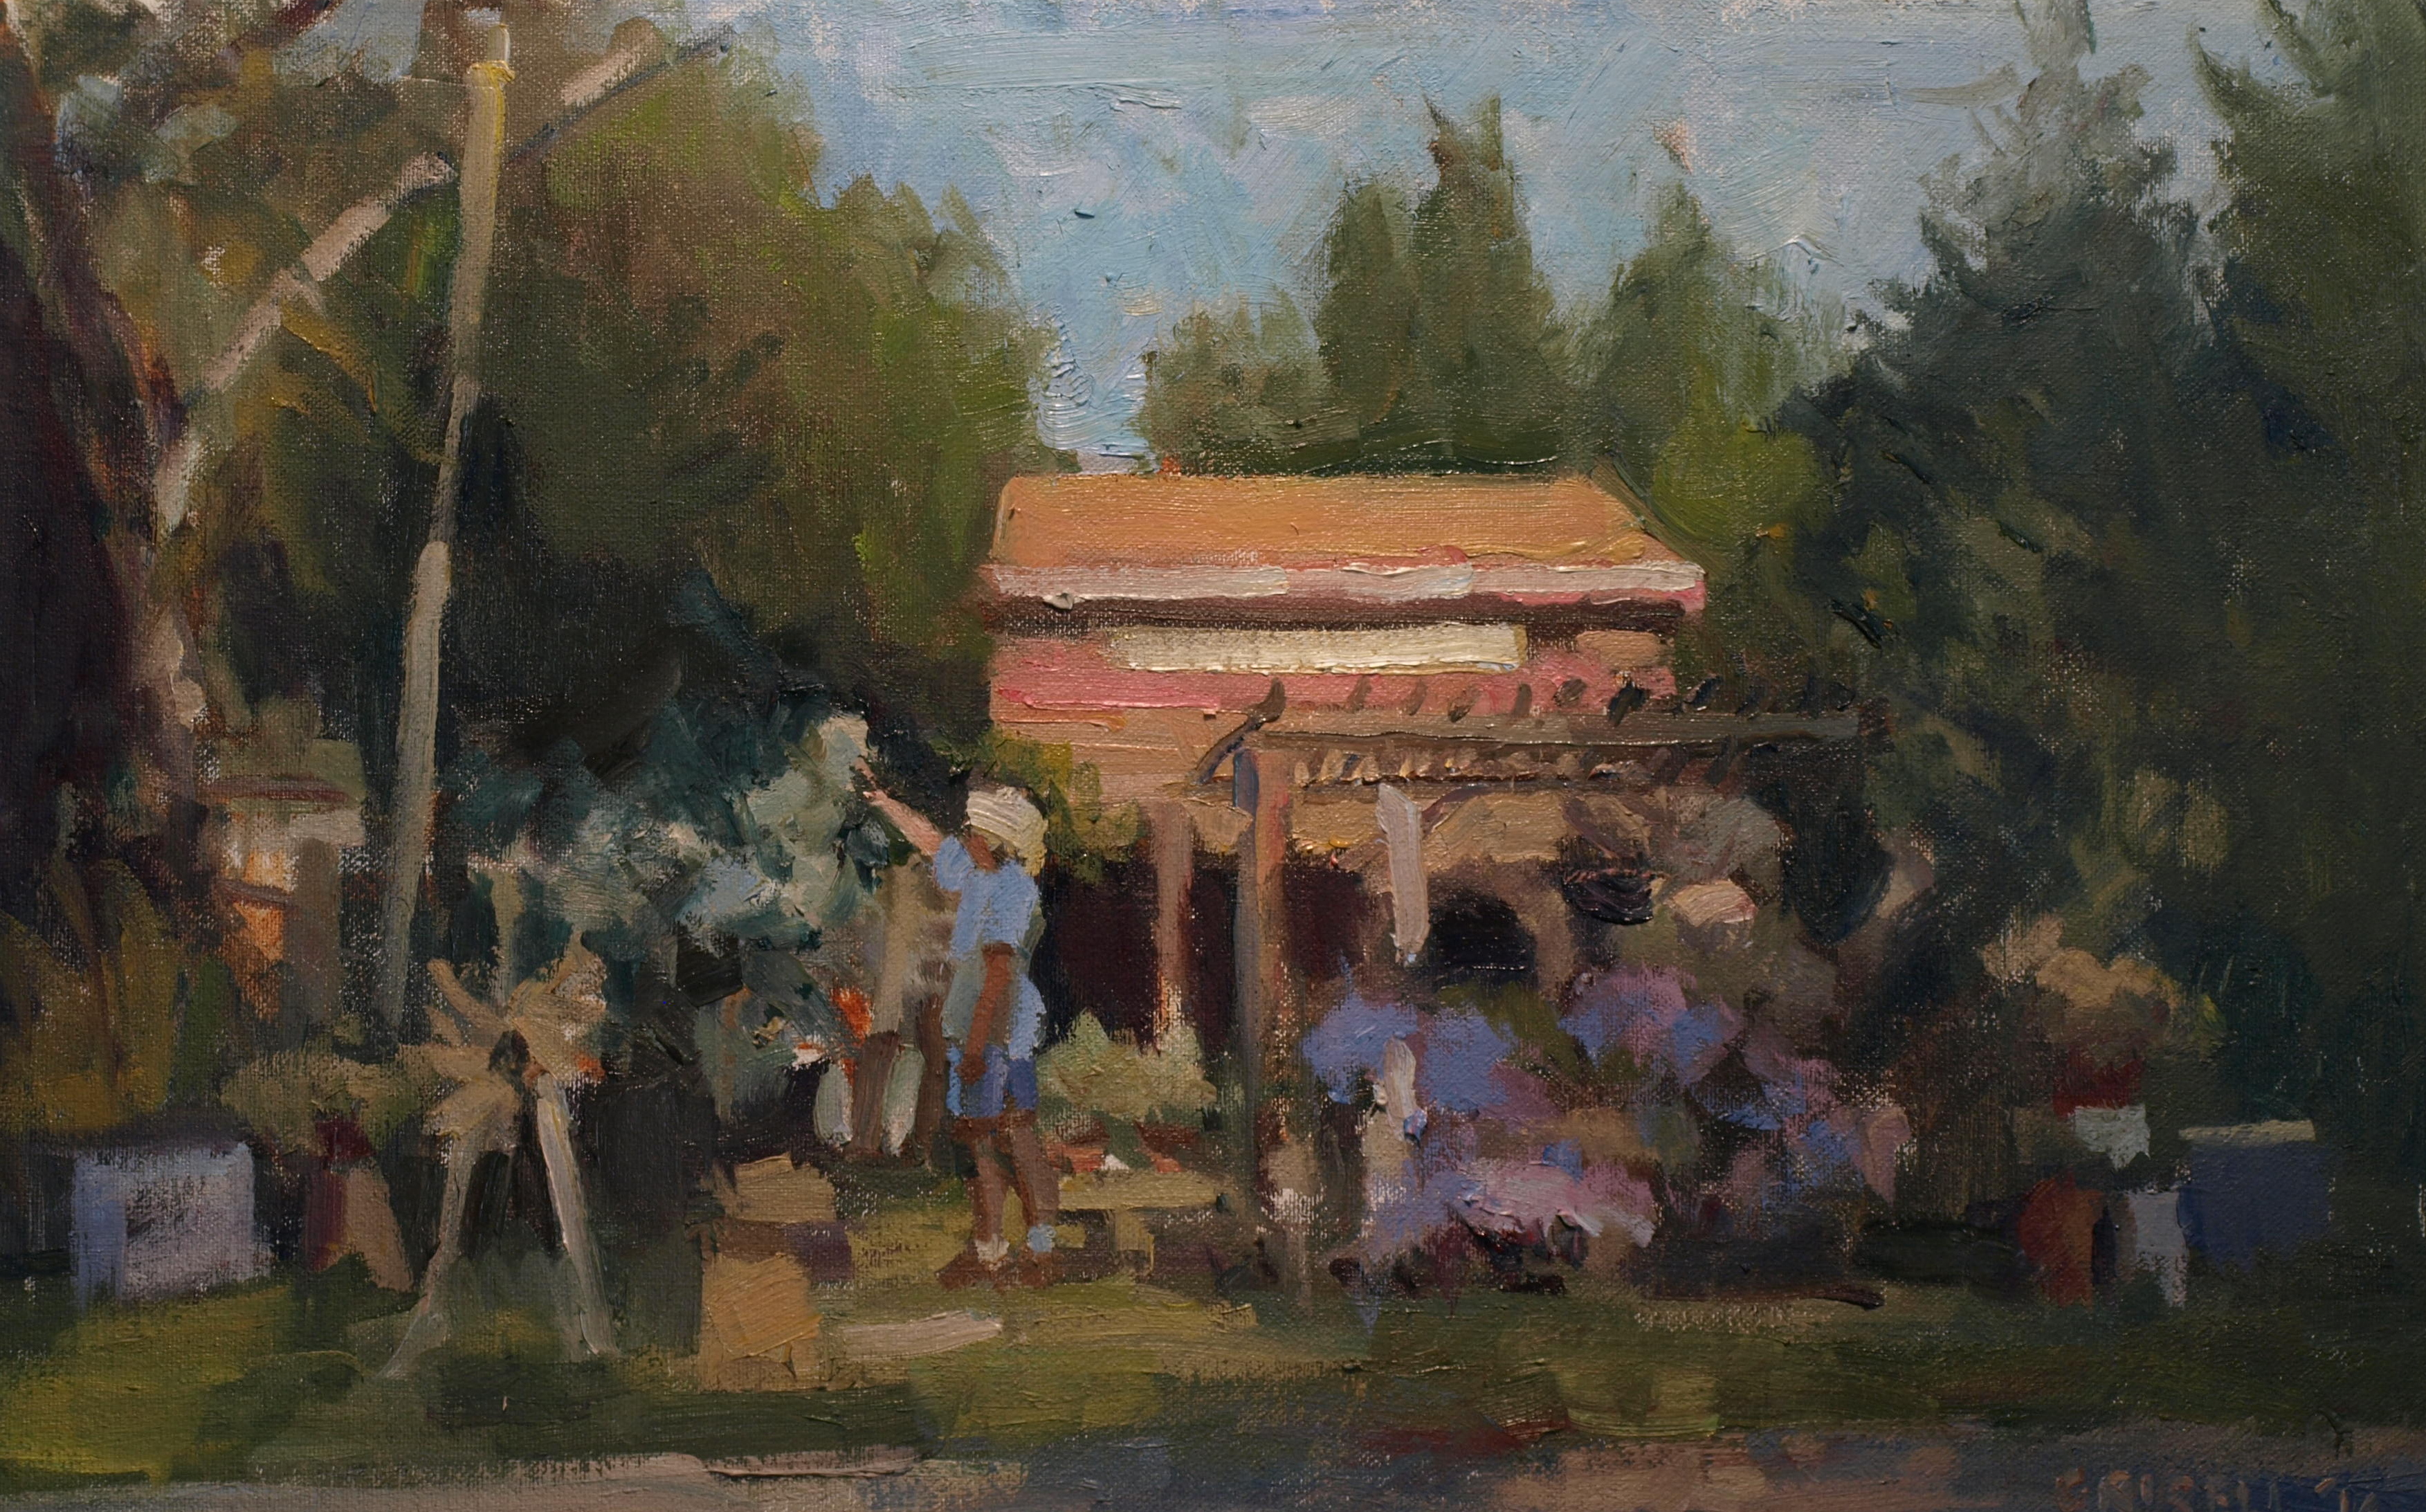 Fieldstone, Oil on Canvas on Panel, 12 x 18 Inches, by Susan Grisell, $300